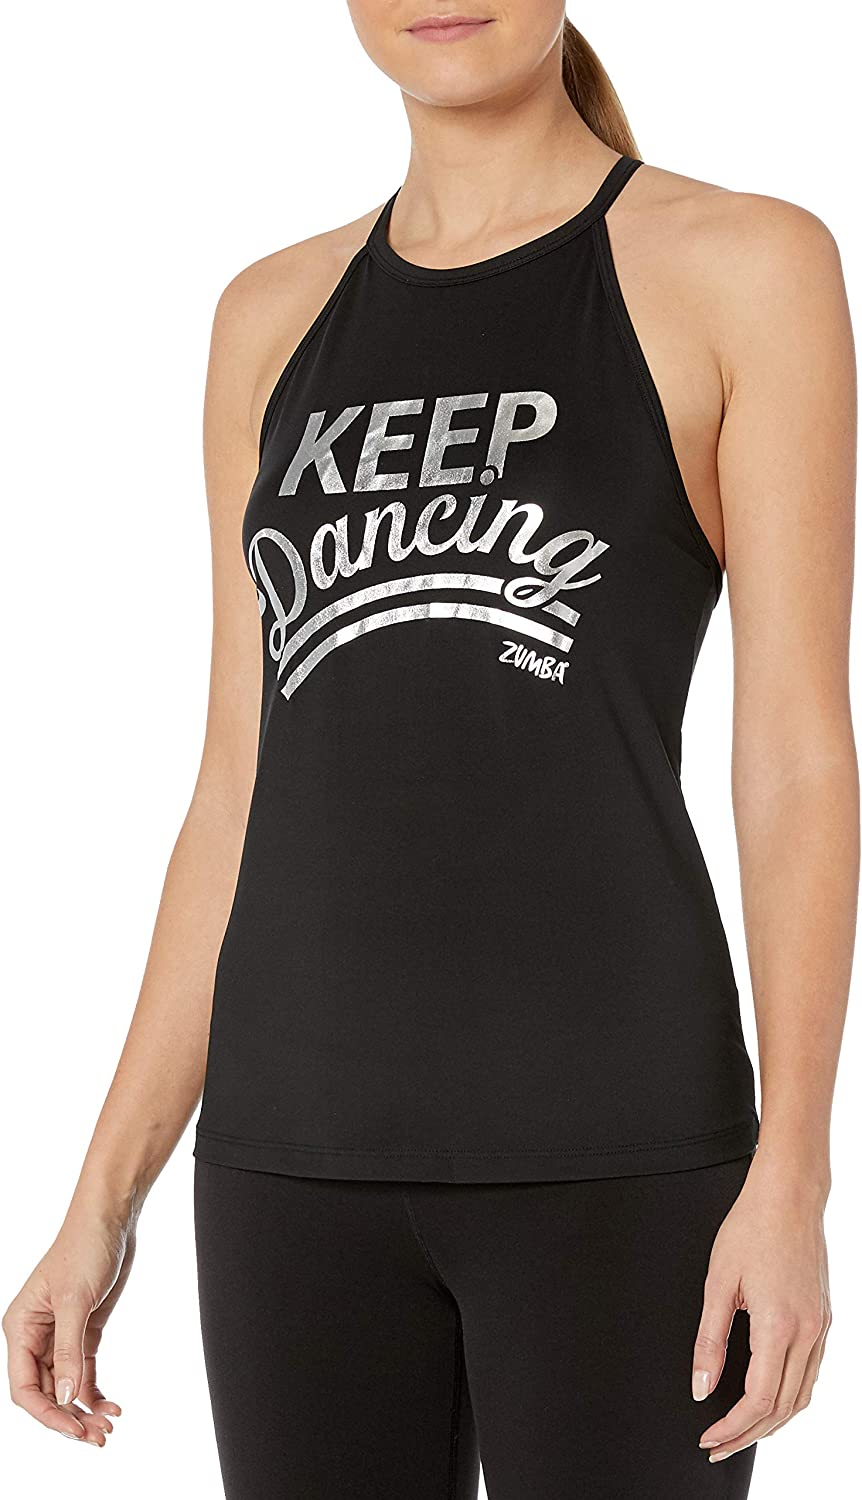 STRONG by Zumba 126 Womens Graphic Design Loose Breathable Workout Tank Top Sleeveless Tank